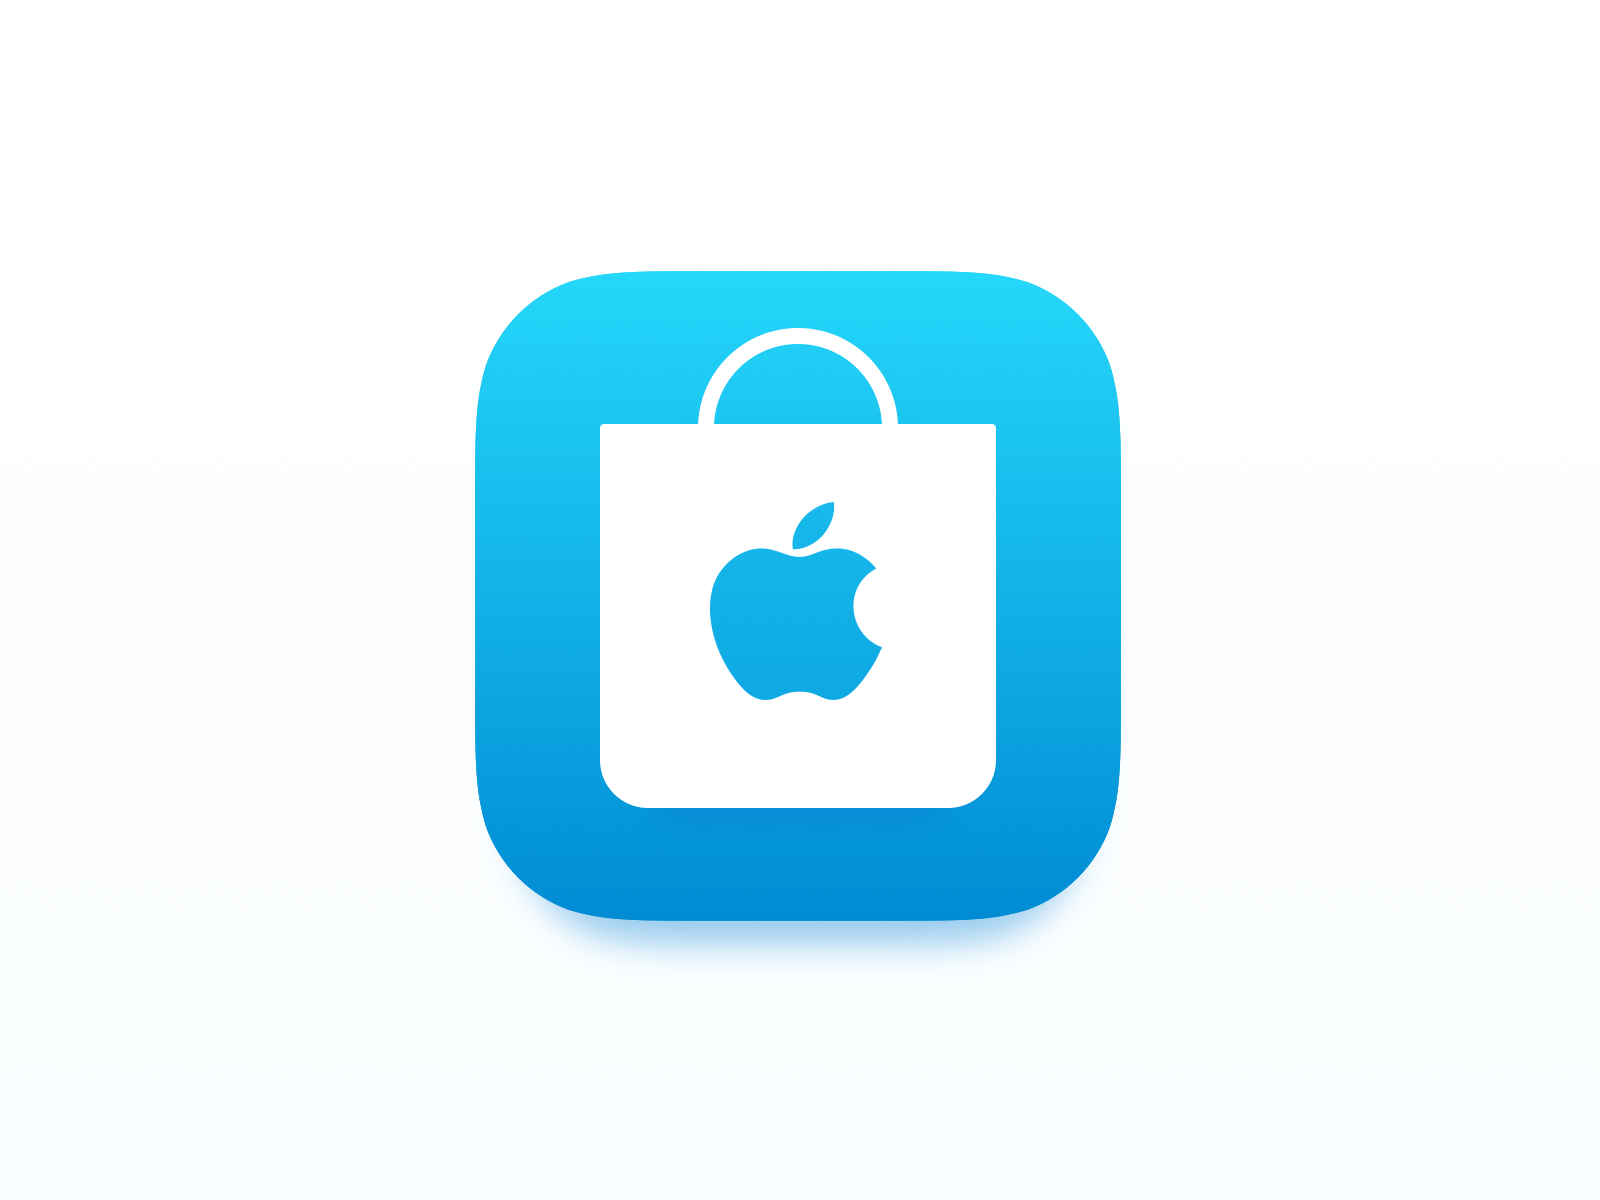 Apple Store iOS 11 App Icon.